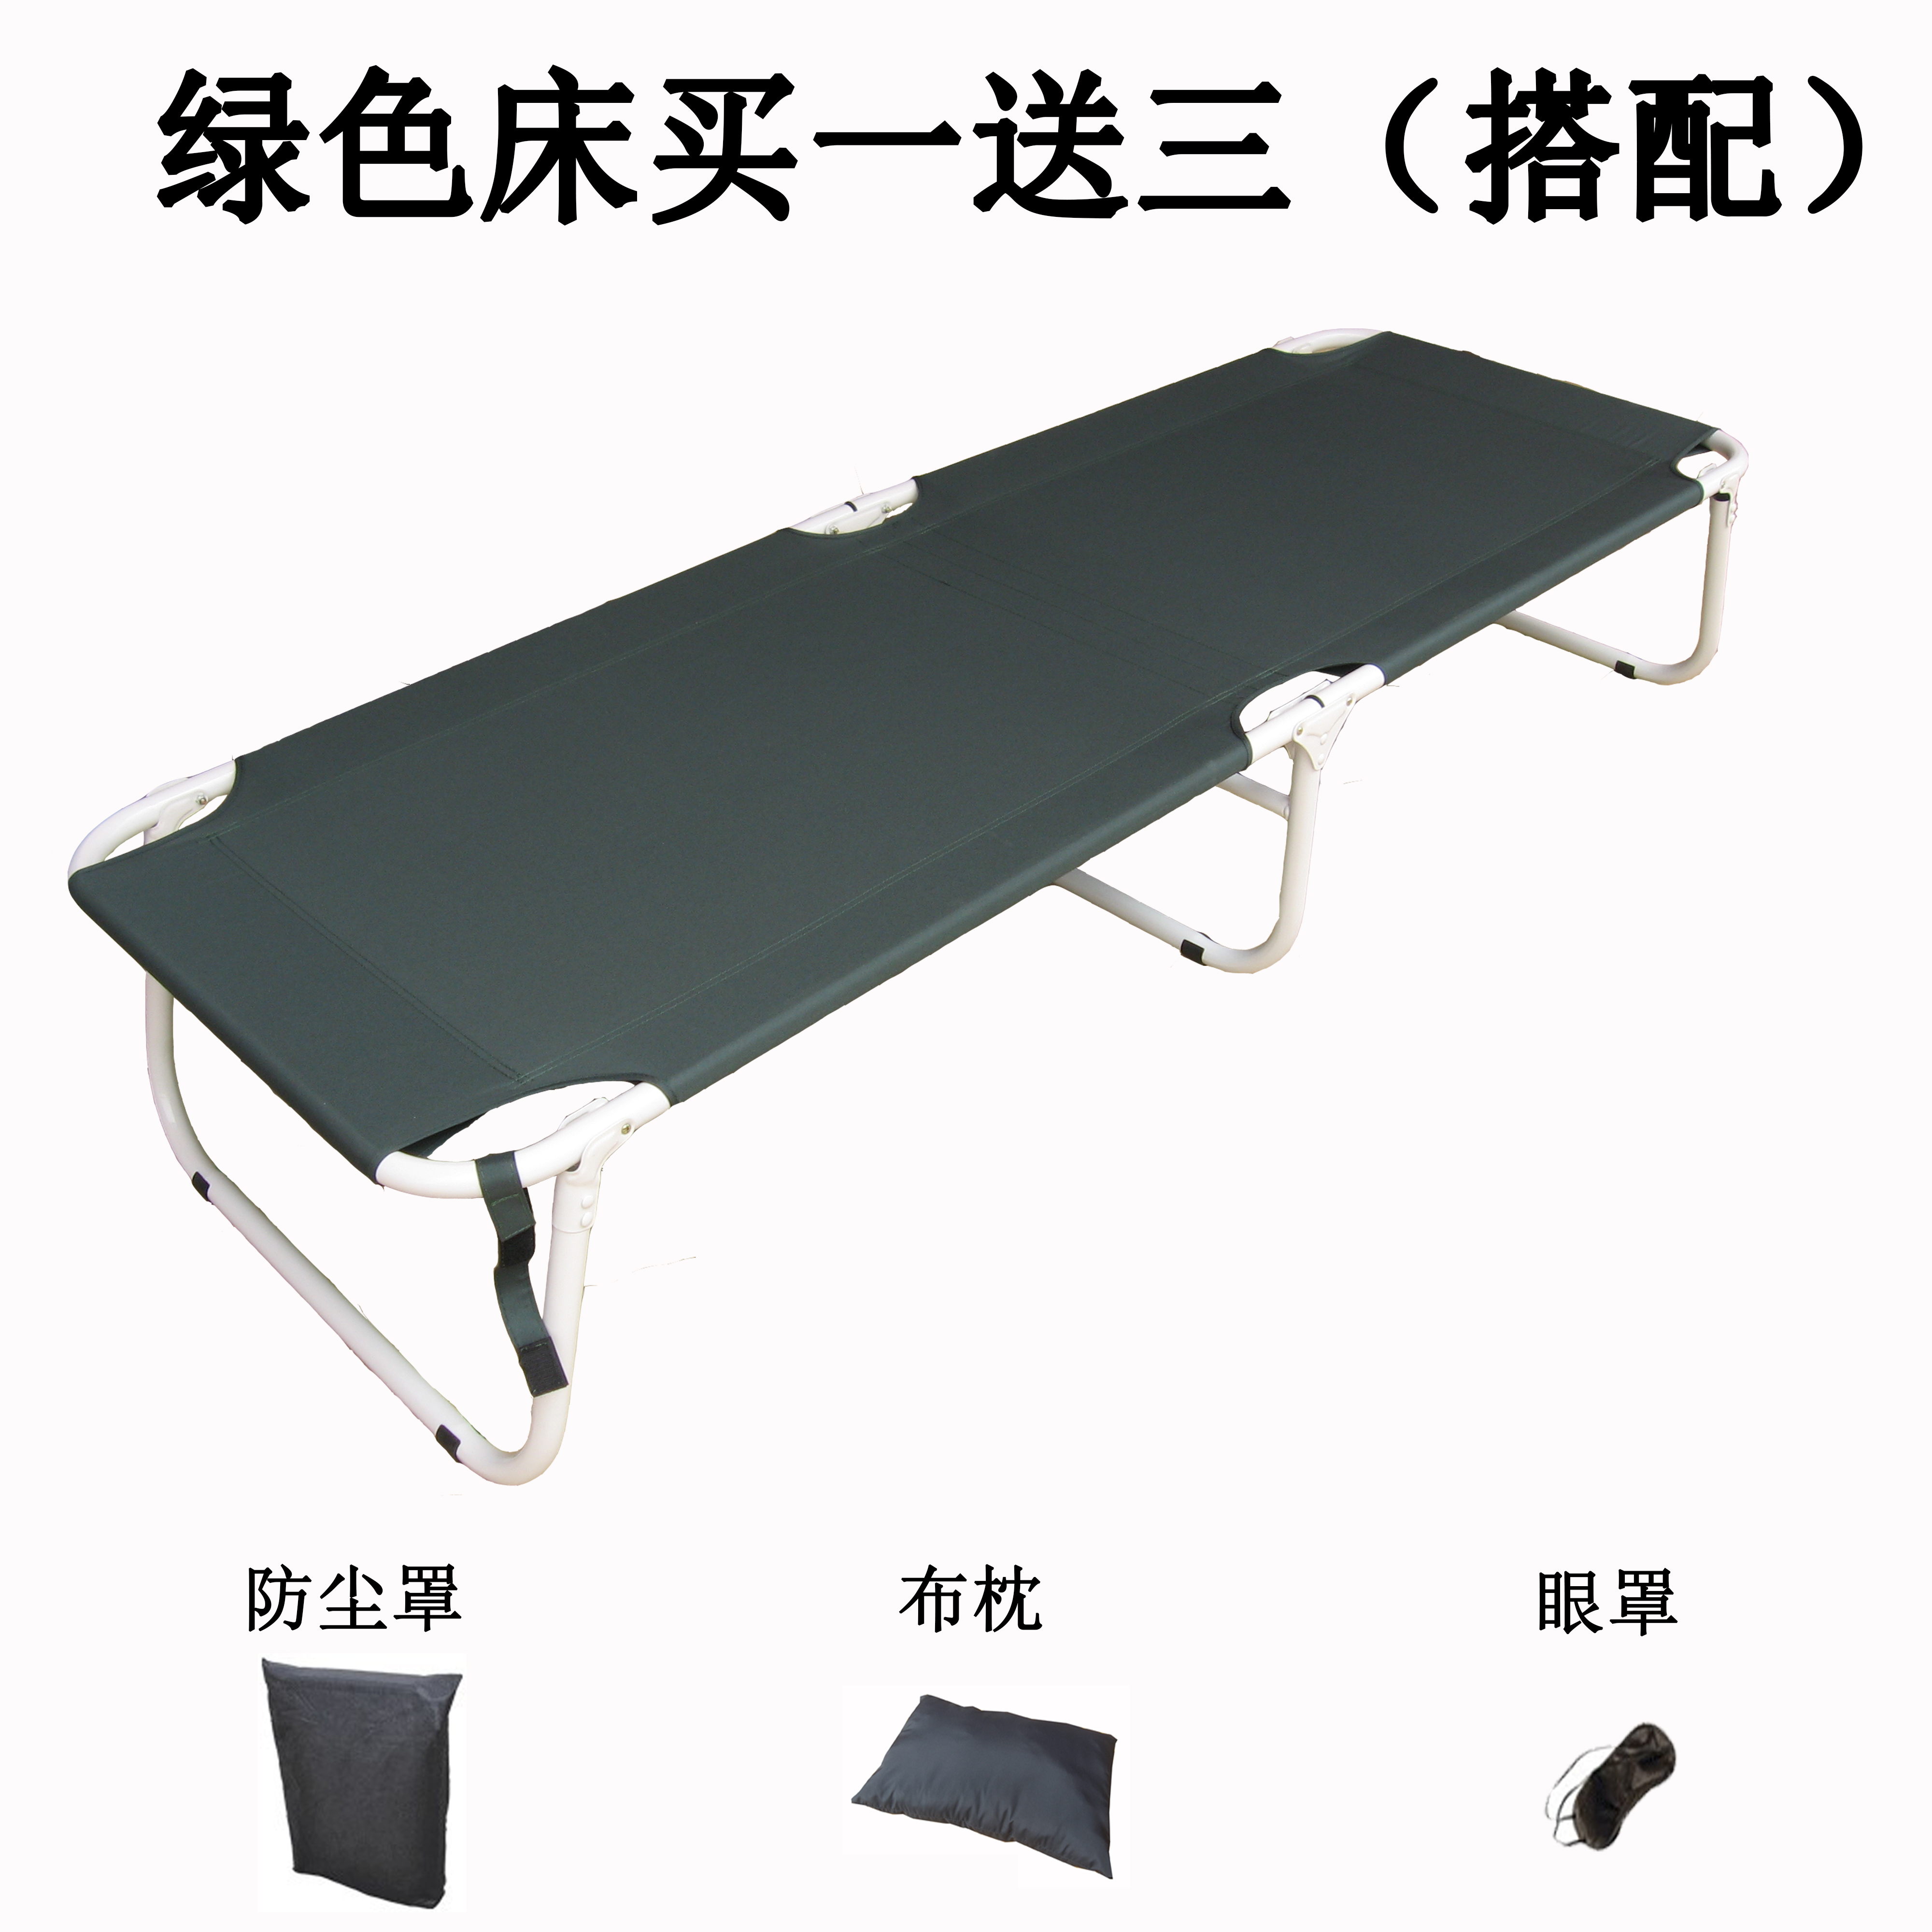 Simple office folding bed, nap bed, beach bed, strengthening camp bed, buy one to send three / folding bed, single bed